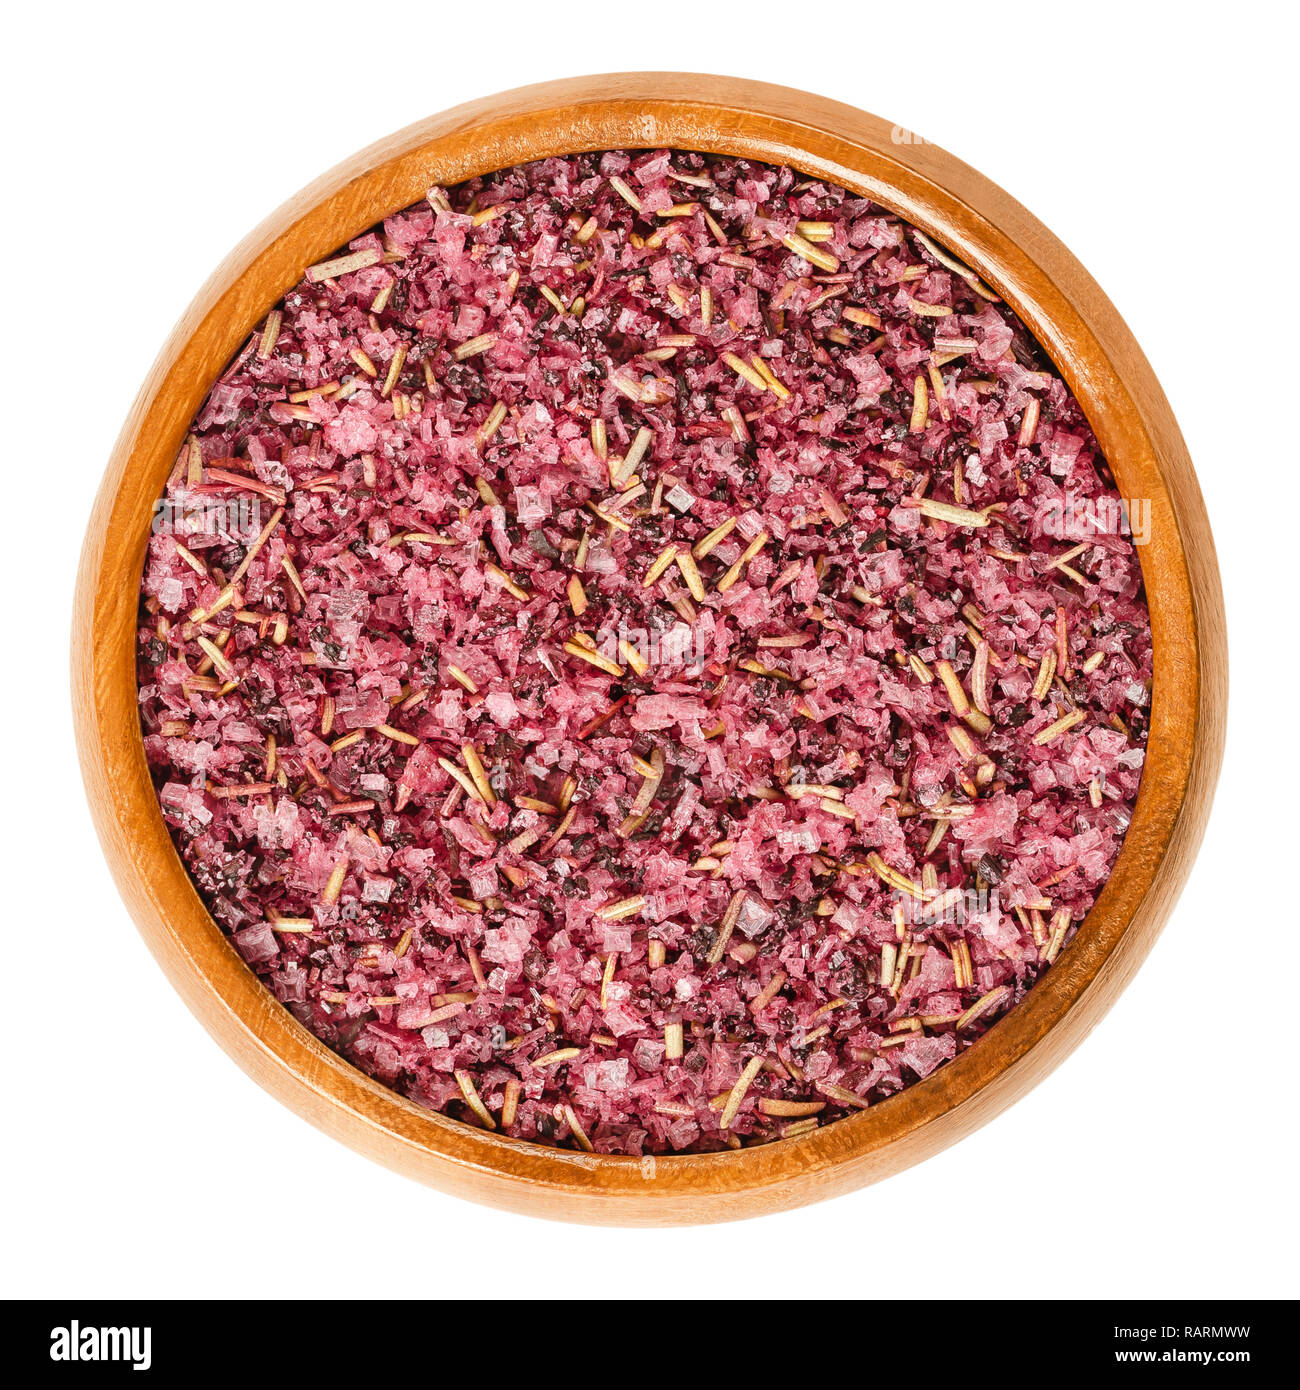 Fleur de Sel with dried hibiscus blossoms and rosemary in wooden bowl. Purple colored salt to flavor and garnish food. - Stock Image